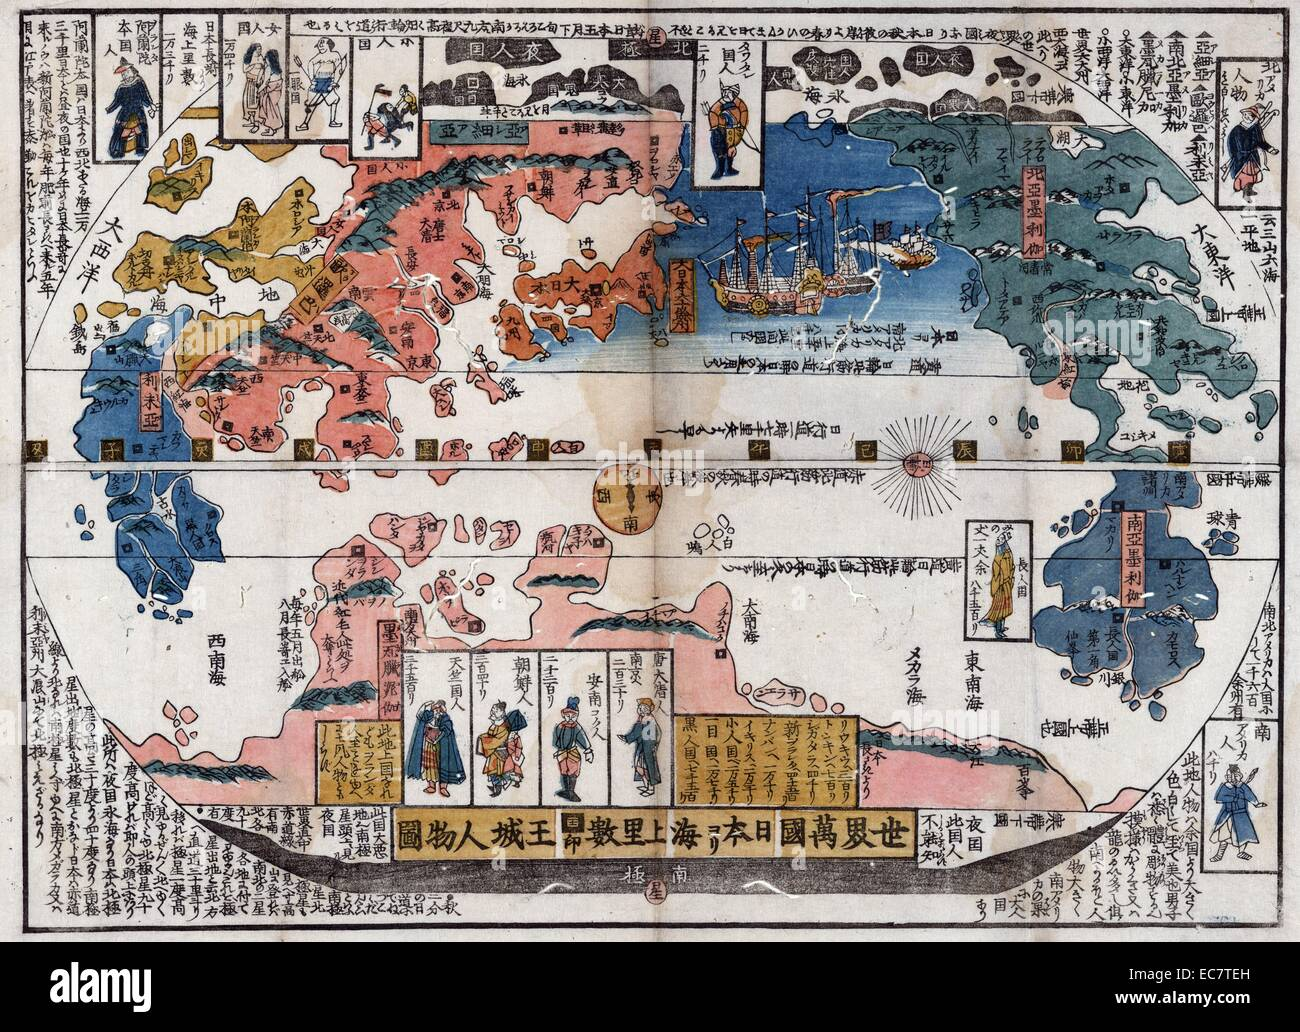 Map of early world stock photos map of early world stock images an early map of the world from the japanese perspective with little if gumiabroncs Gallery